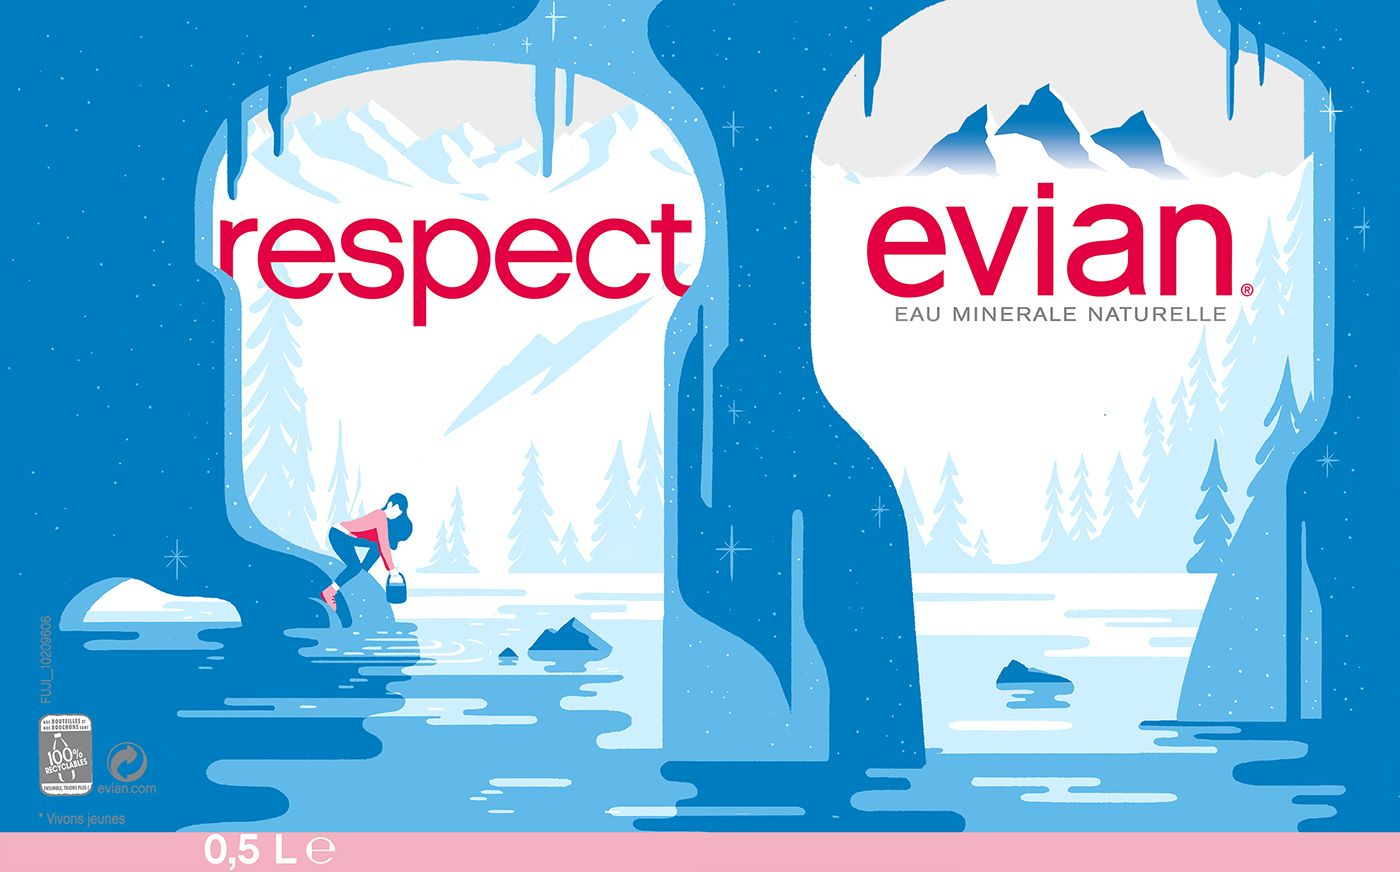 Evian illustrated campaign on Behance